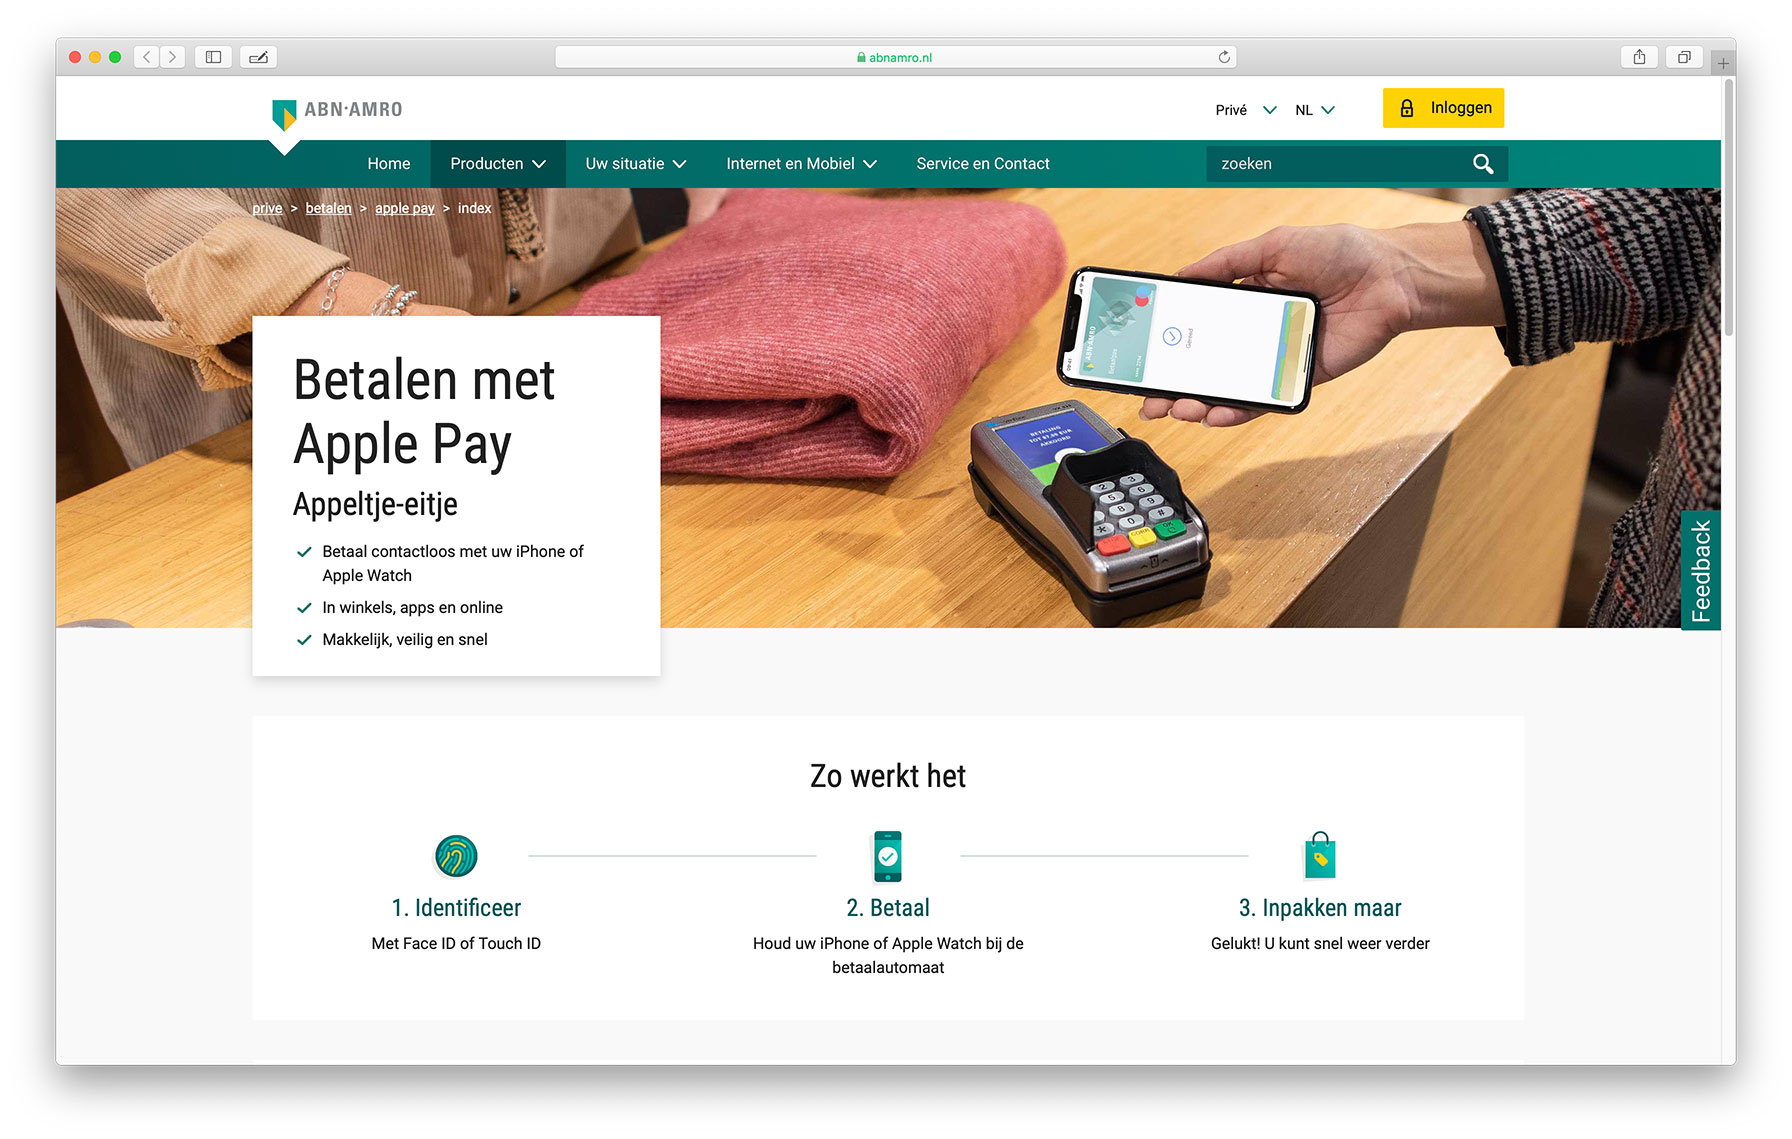 https://www.macfreak.nl/modules/news/images/zArt.ApplePayABN-AMRO.jpg